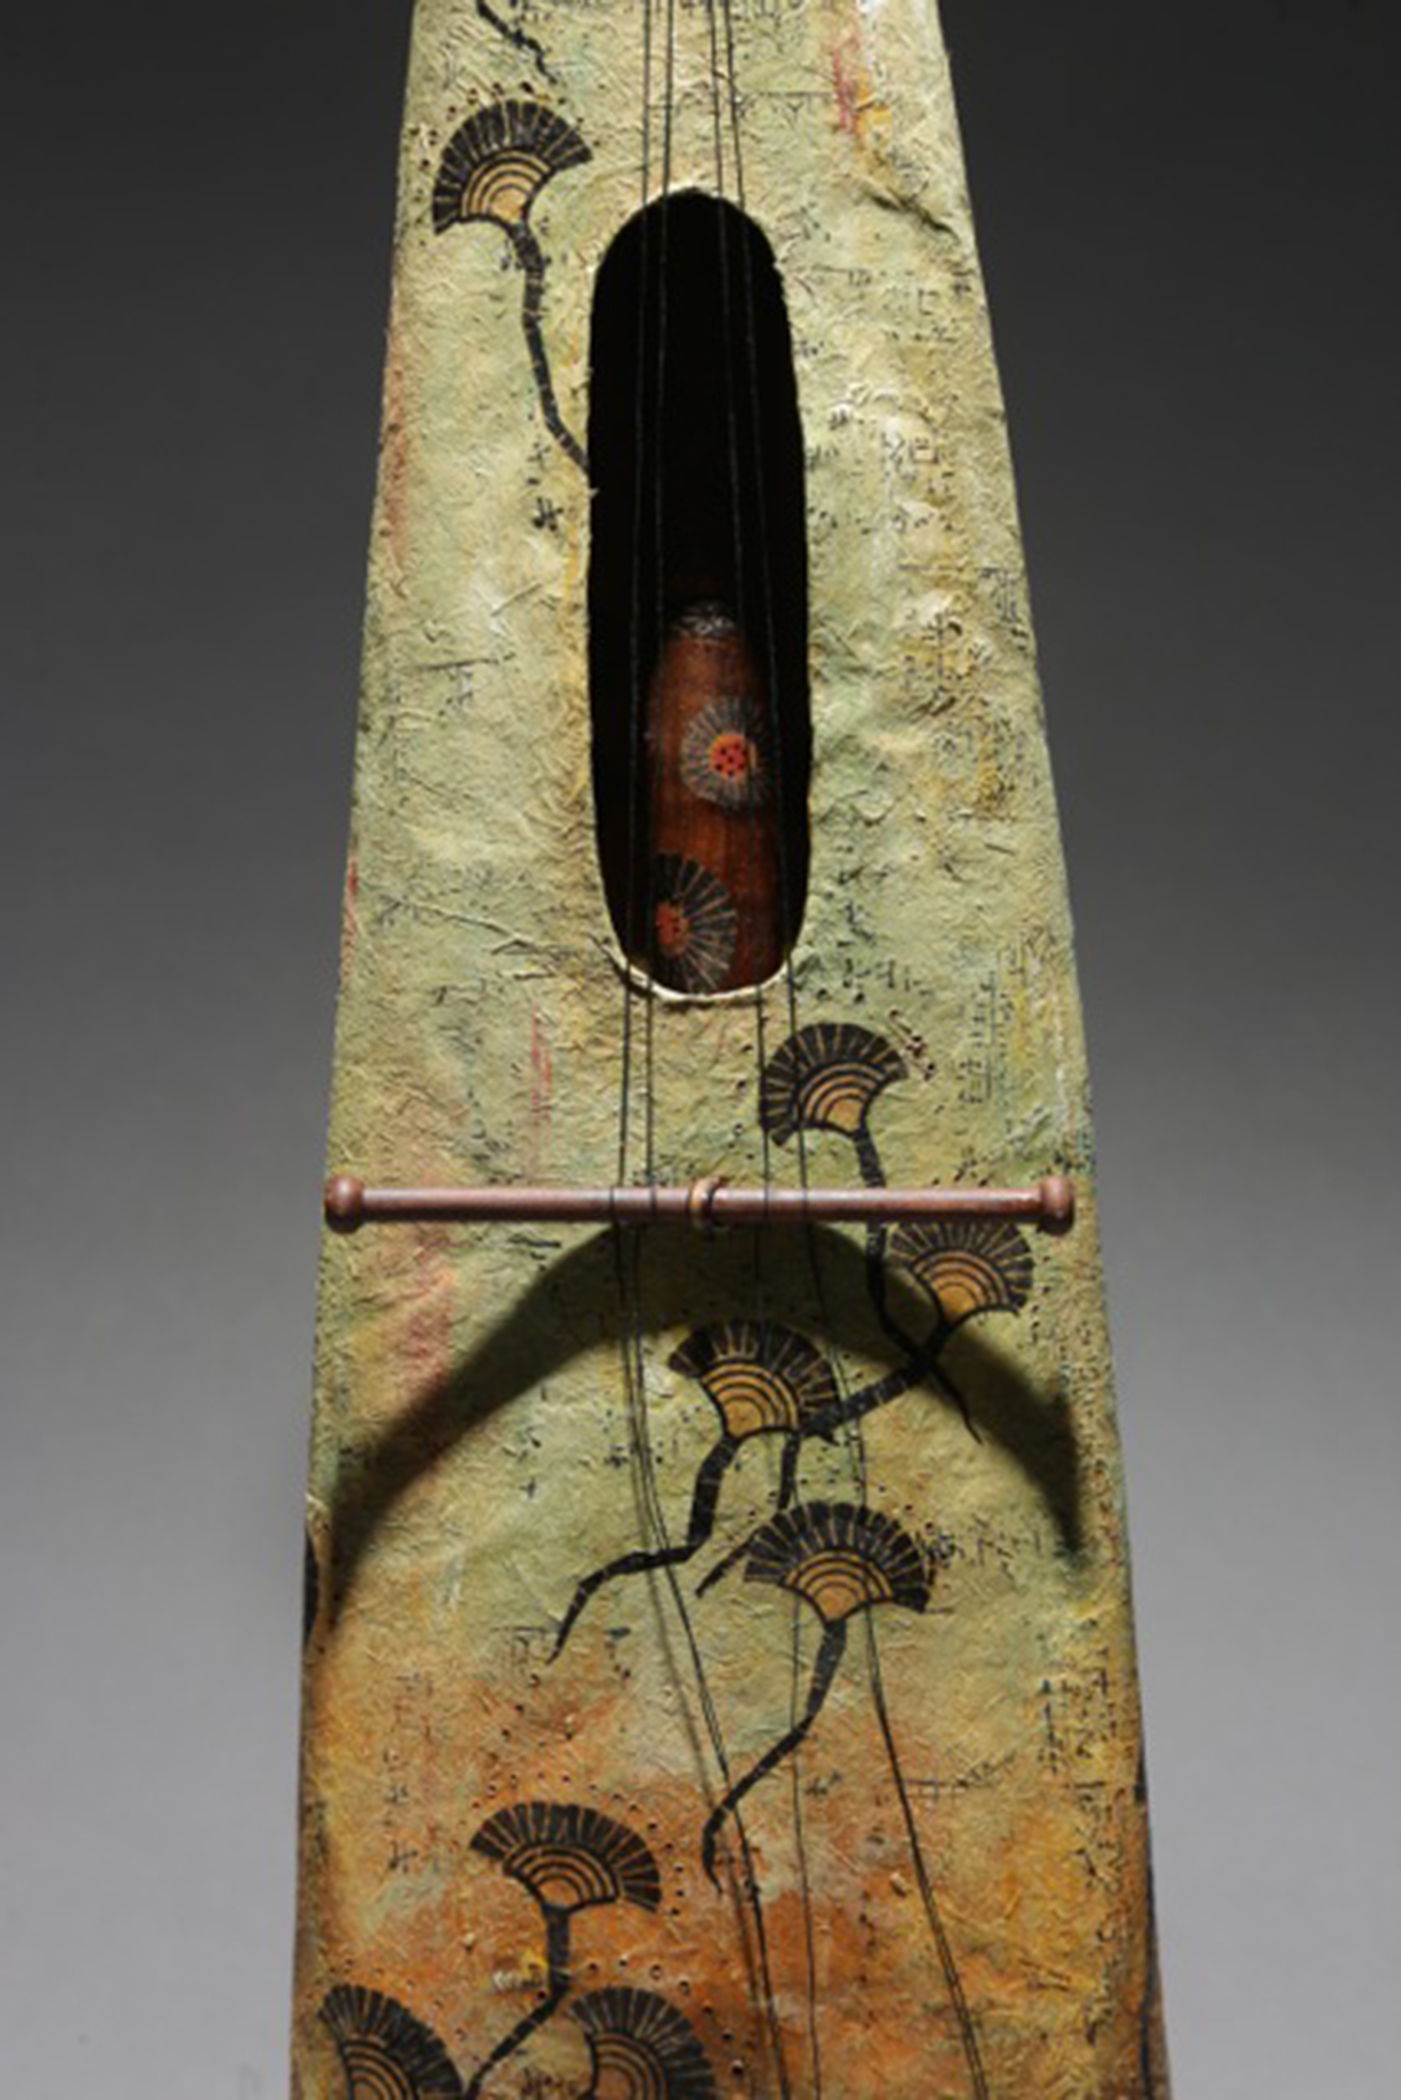 Danielle Bodine, Wanderer's Song (details), Mulberrry and recycled papers, wood cane, waxed linen, bobbin